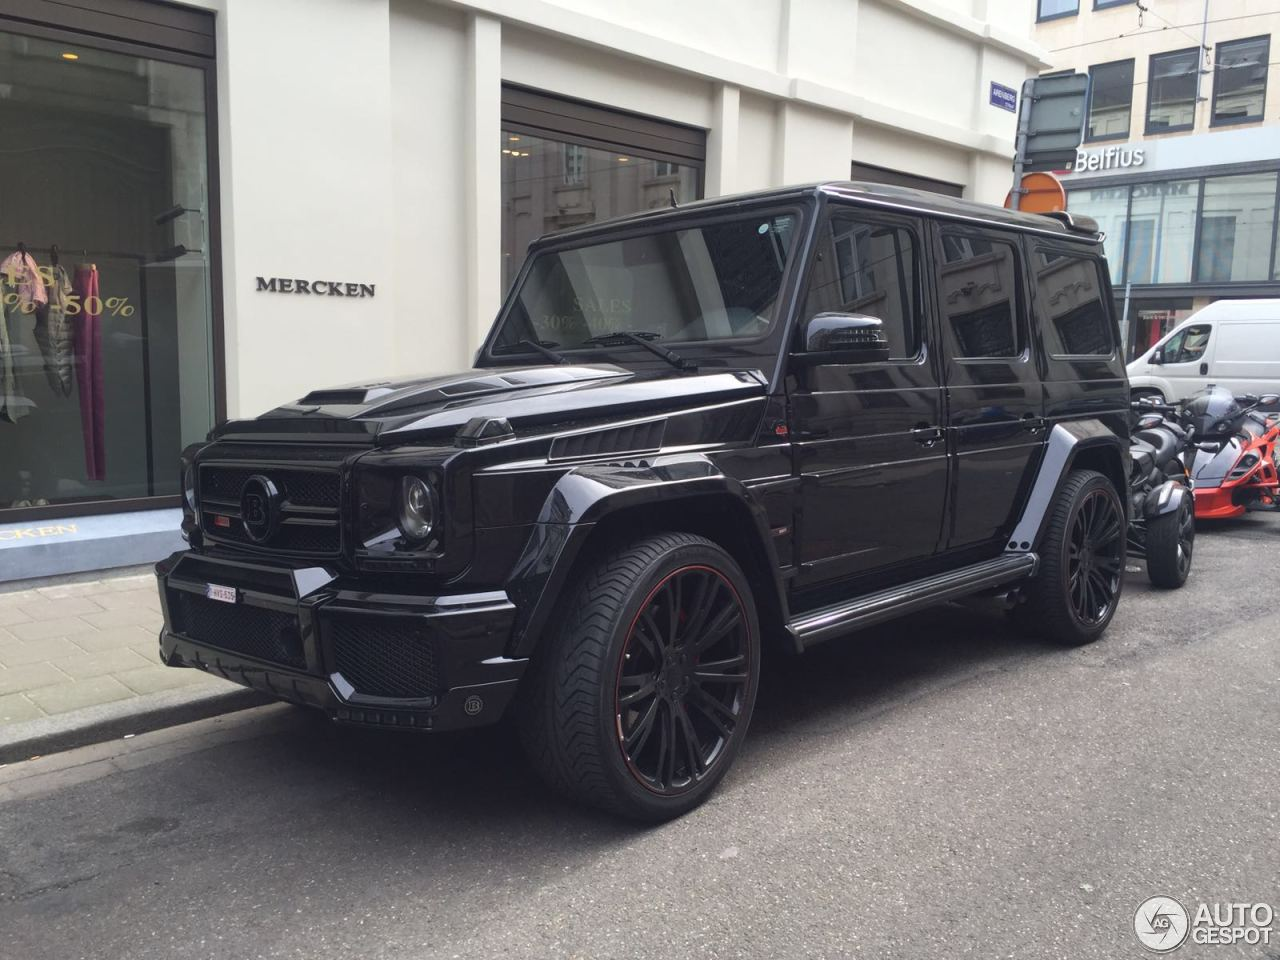 Mercedes benz brabus g 800 9 july 2016 autogespot for Mercedes benz g class brabus